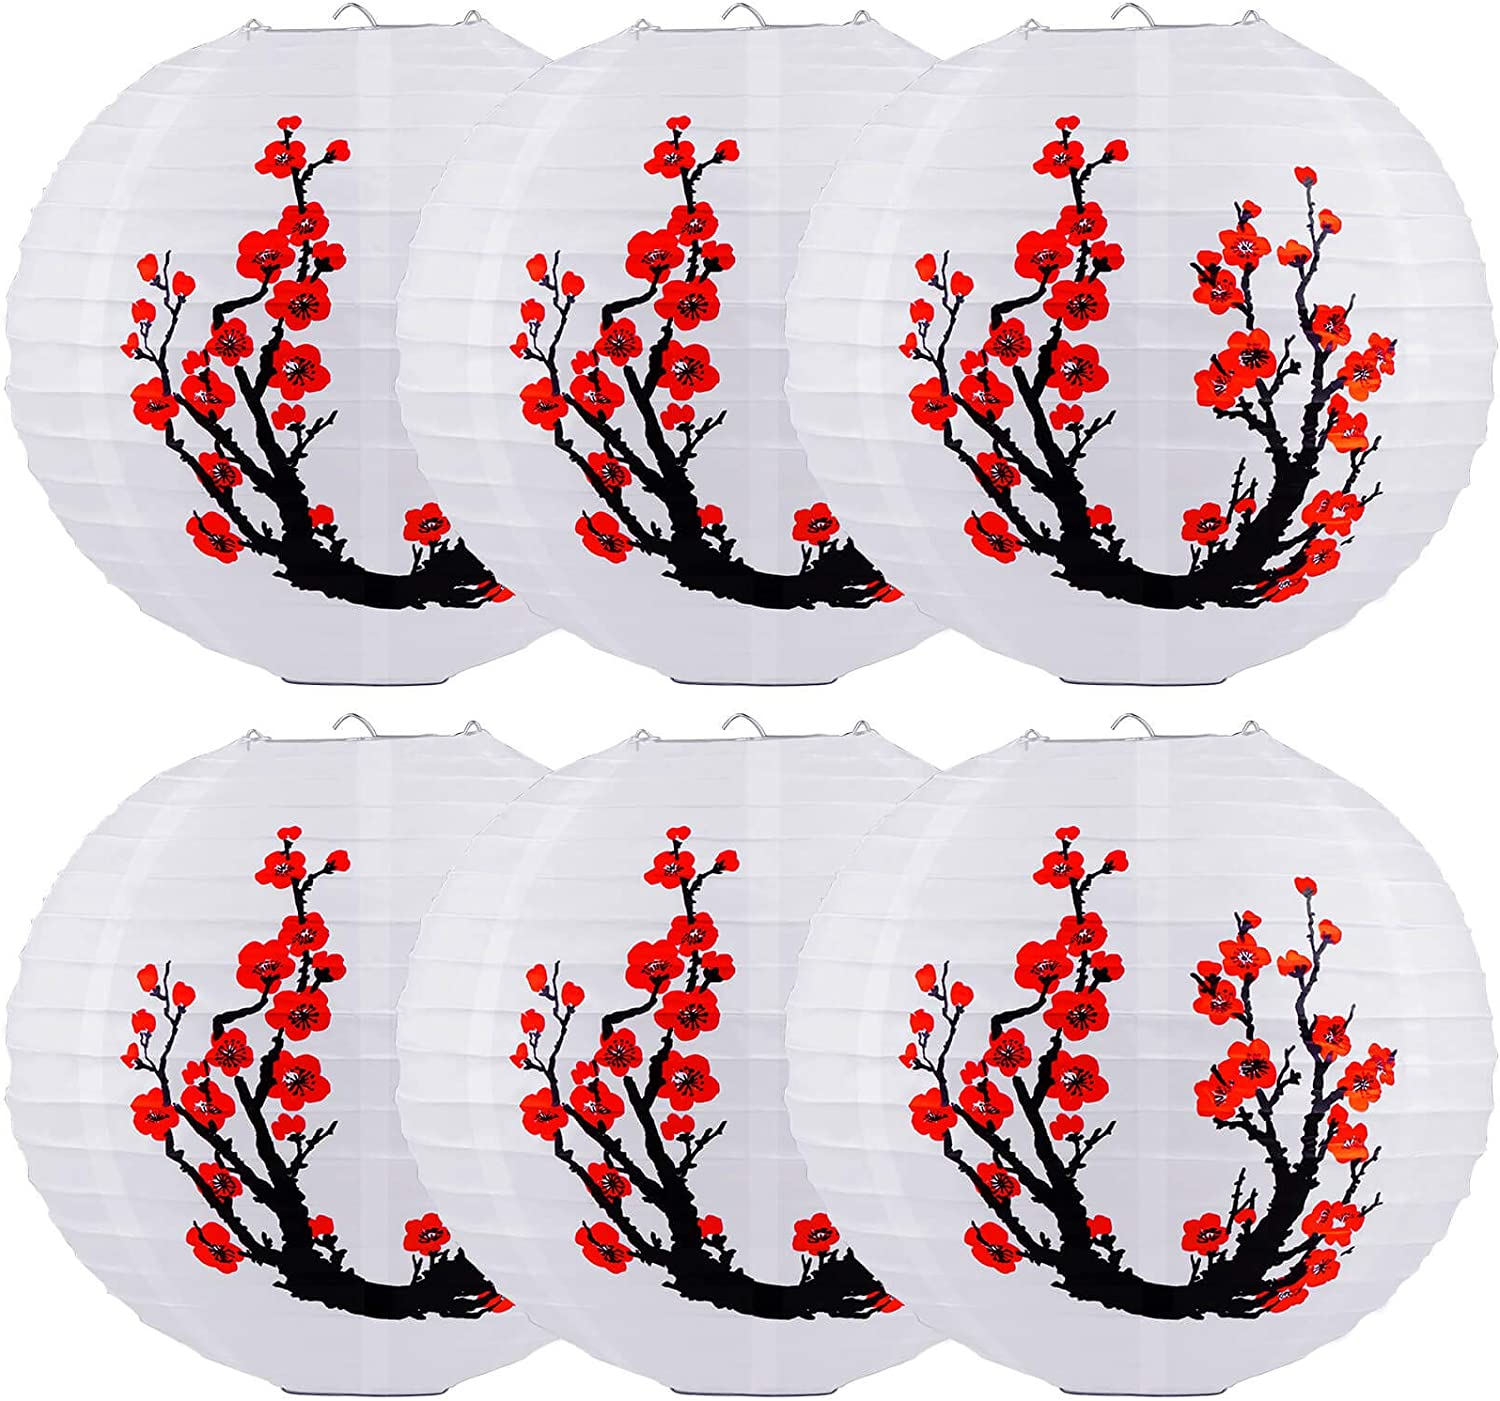 Chinese Japanese Paper Lanterns, 6 Pack 12 Inch Japanese Hanging Lantern, Foldable Reusable Red Cherry Blossom Lantern, White Round Lantern Decorations for Party Decor Wedding Home